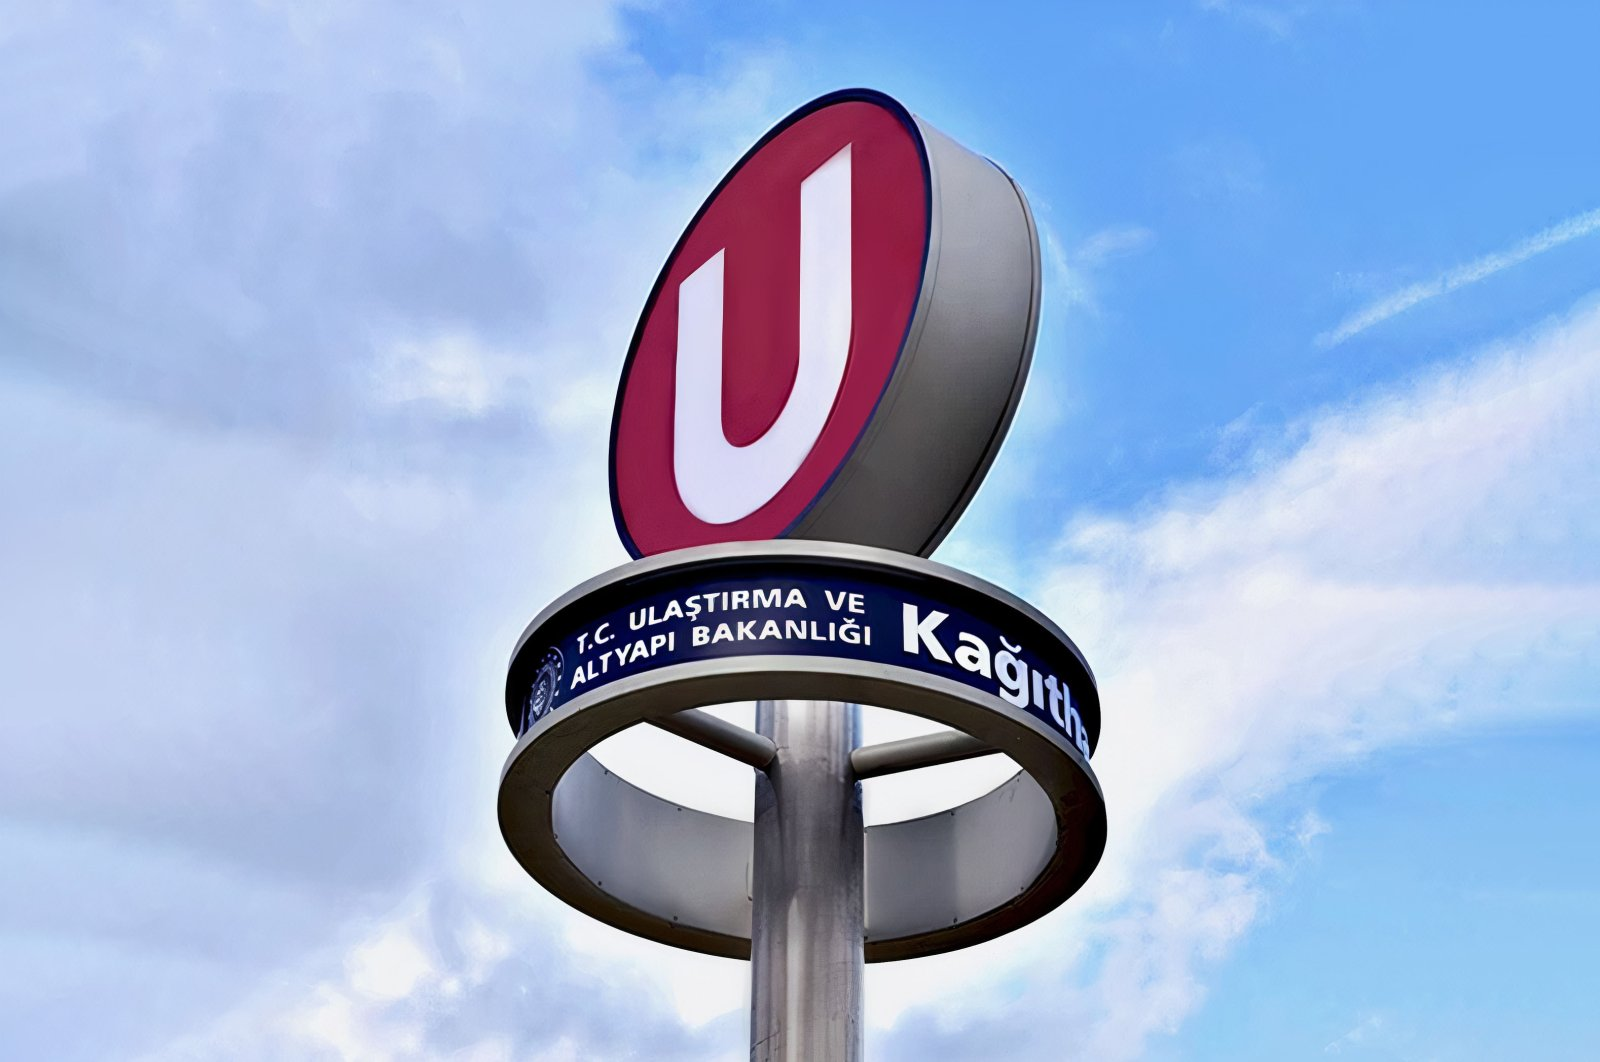 """A view of the """"U"""" sign erected at Kağıthane metro station that is currently under construction, in Istanbul, Turkey, Sept. 6, 2021. (DHA Photo)"""